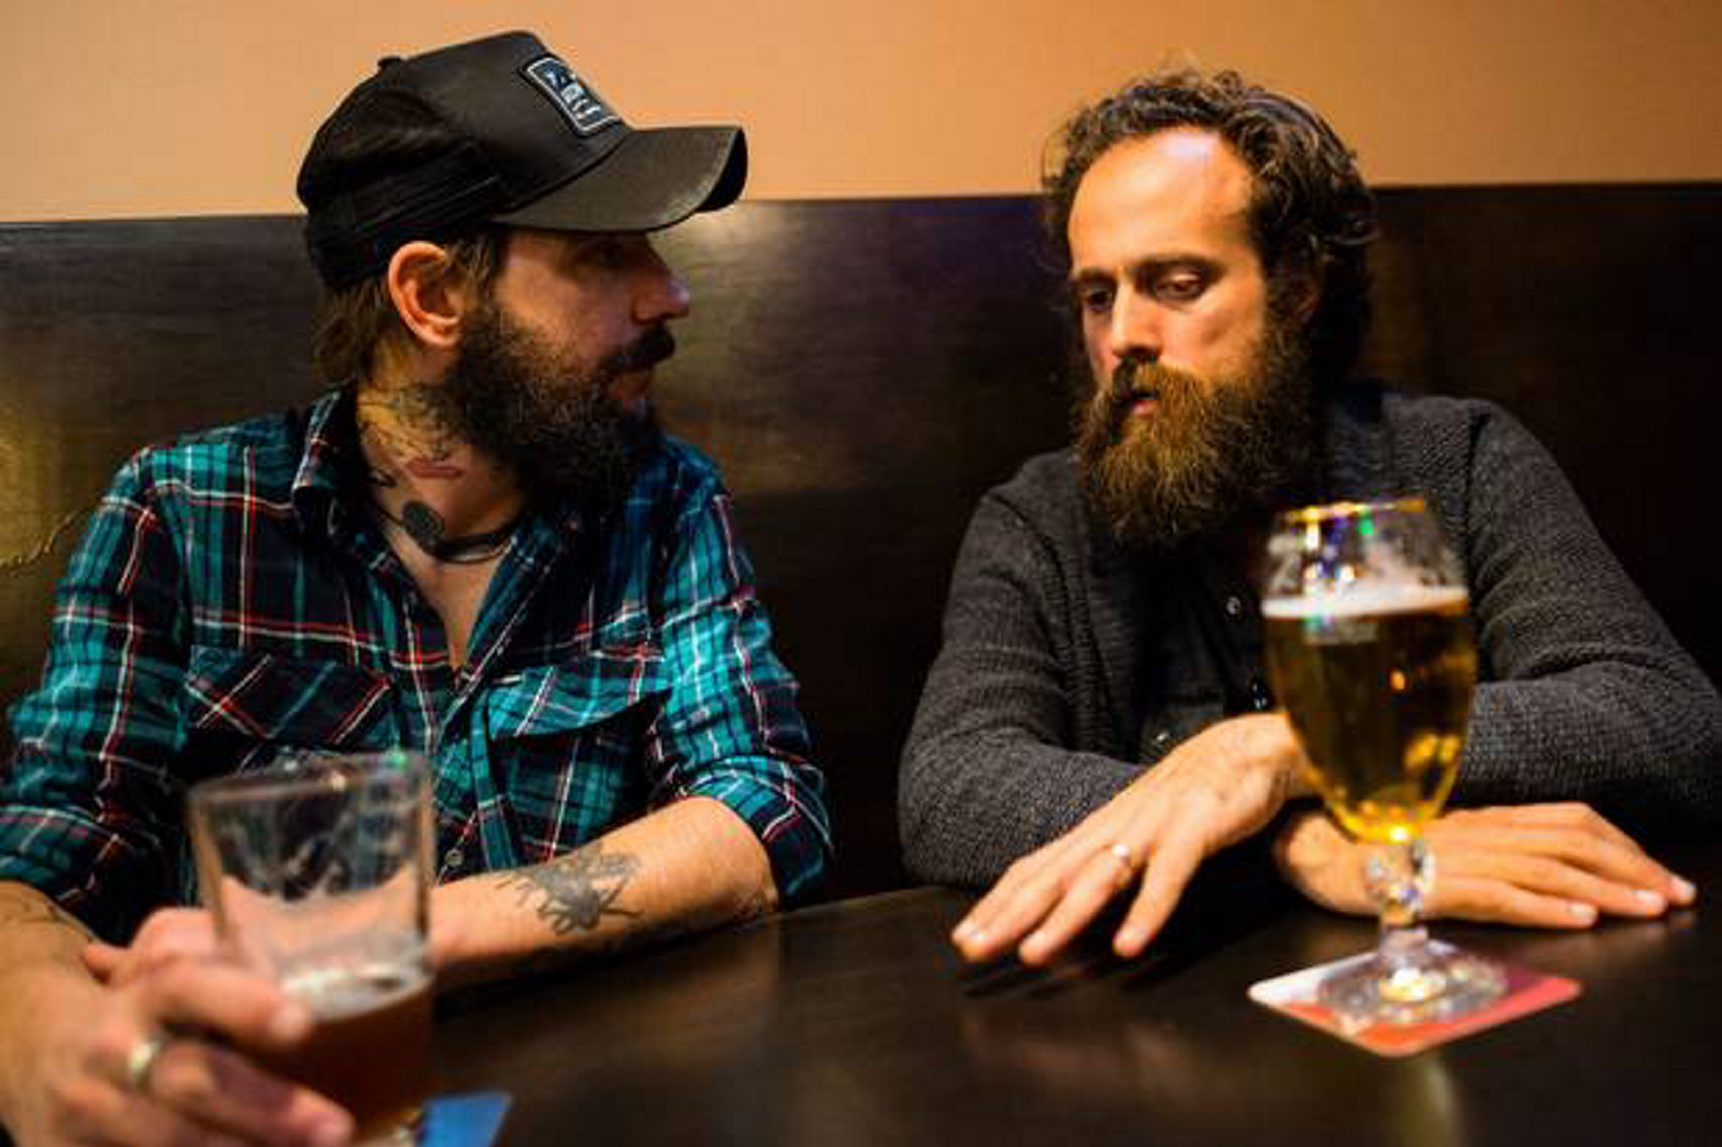 Ben Bridwell, left, teams with Sam Beam's Iron & Wine for a concert at Canalside on Thursday.